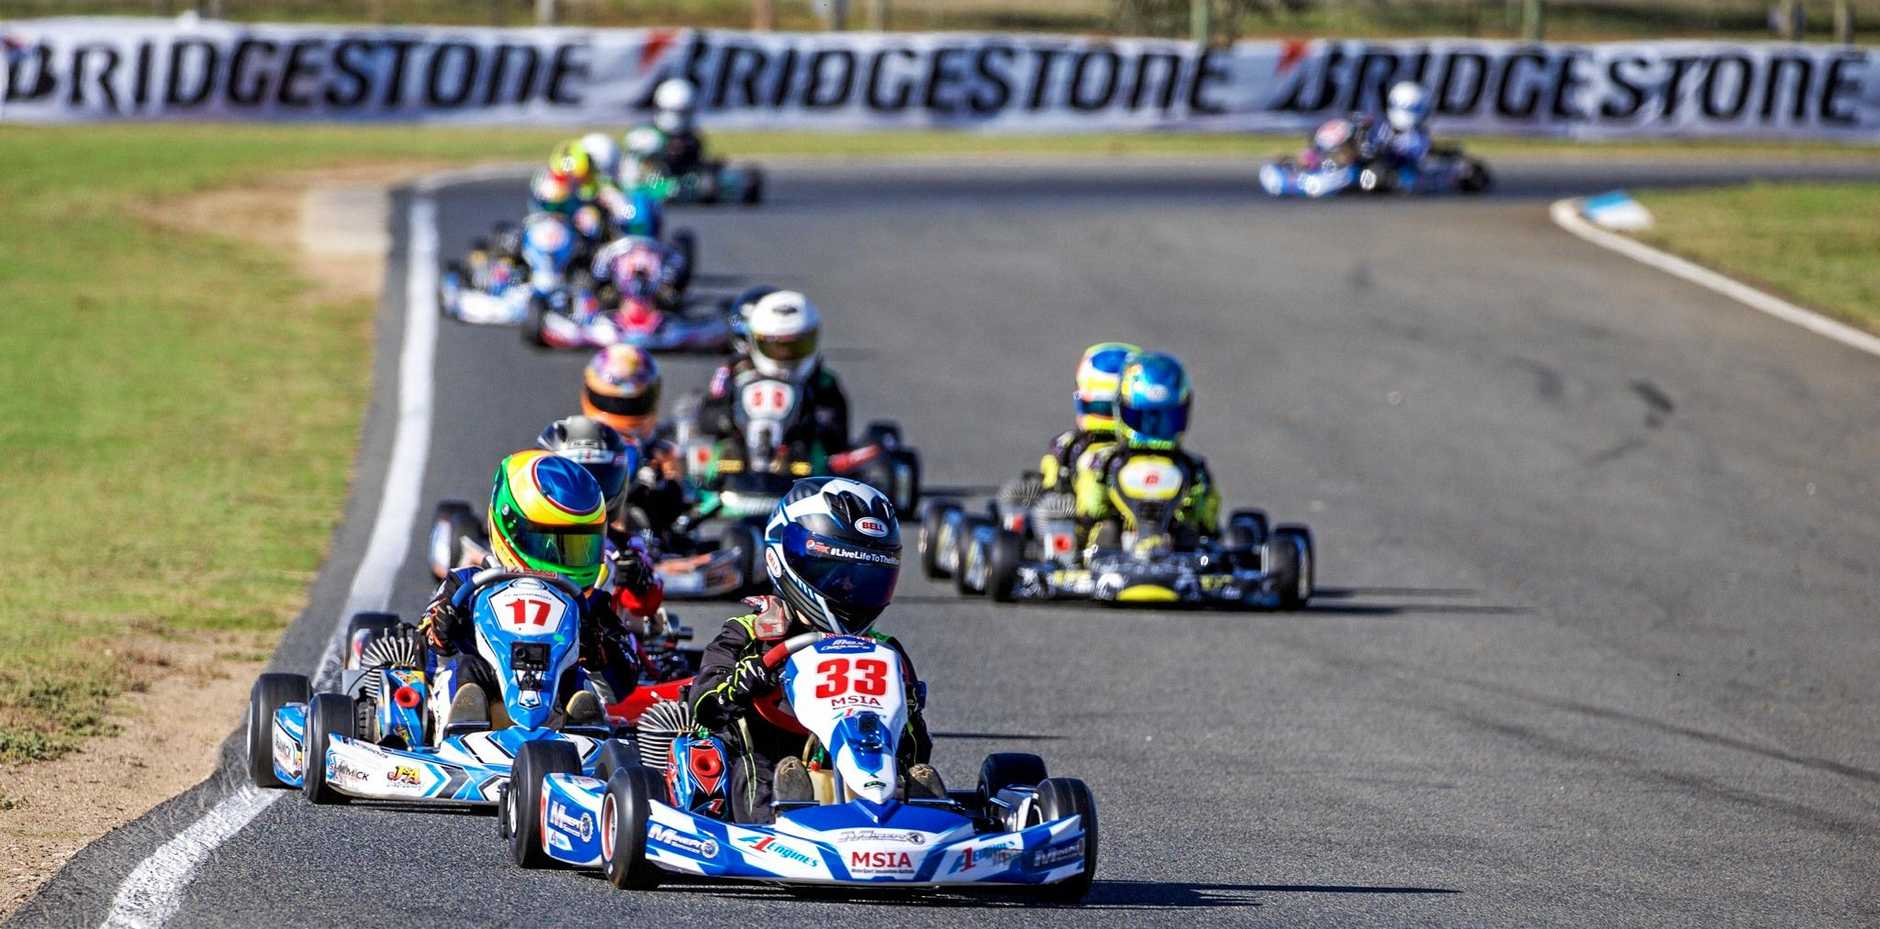 Max Deguara (#33) is expected to lead the Cadet 12 class at the Sugar City Titles this weekend .